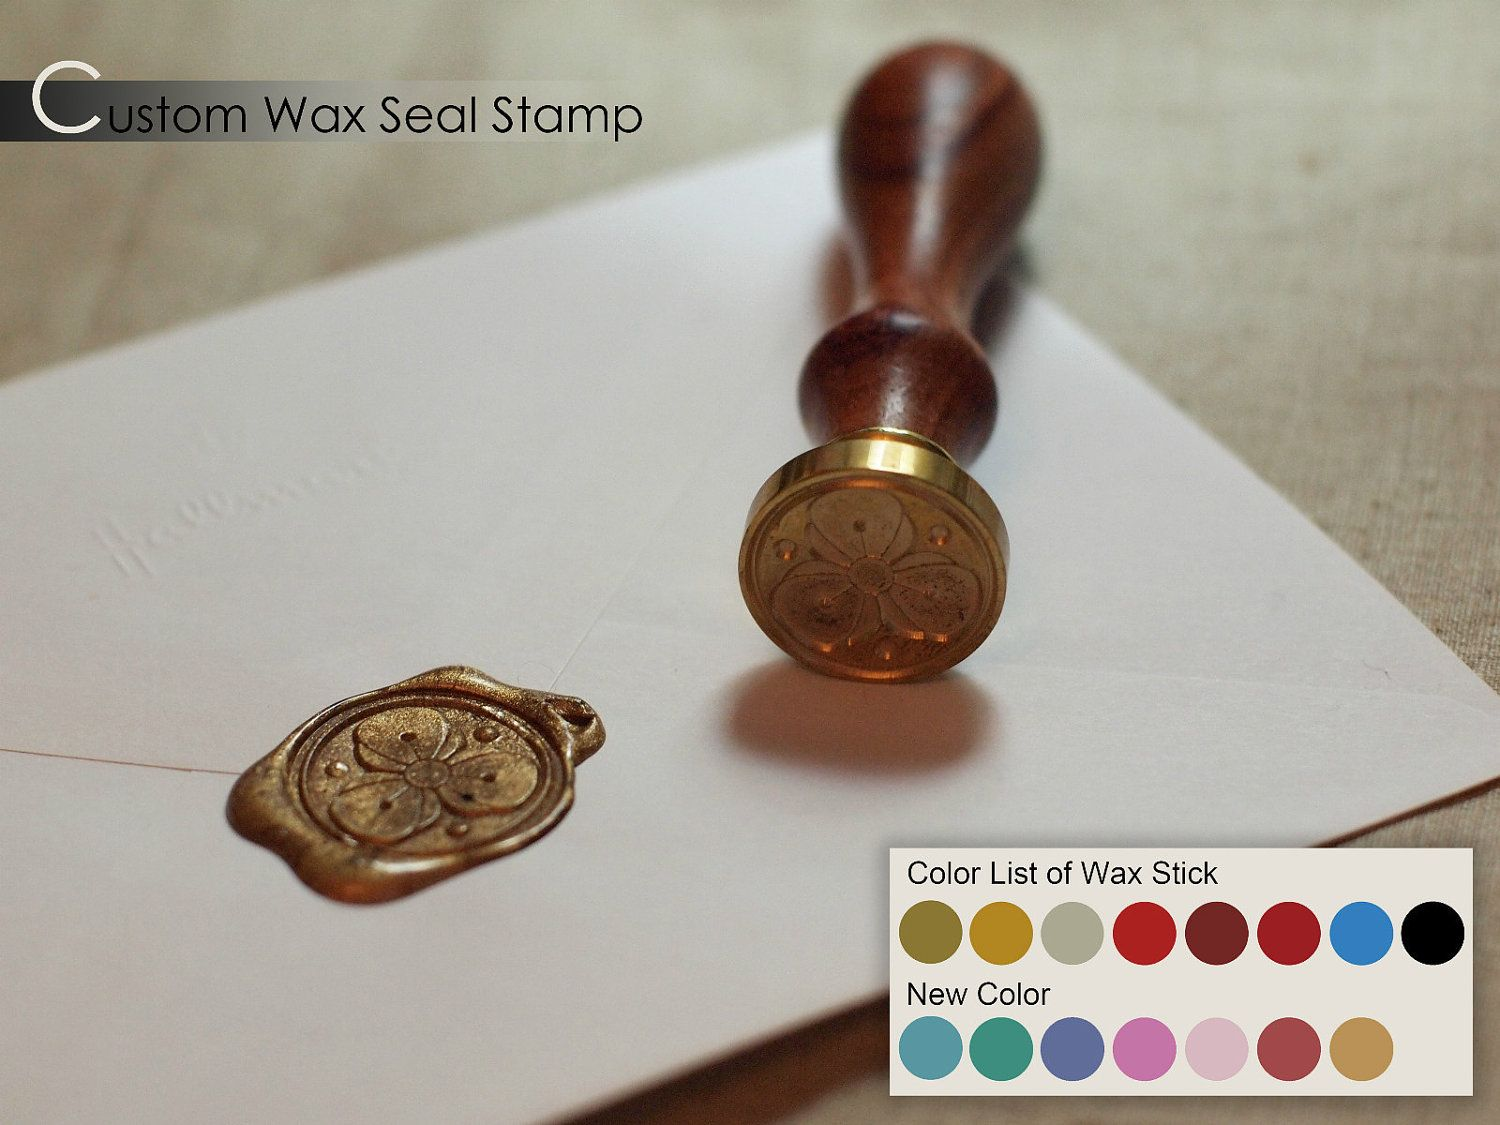 Custom Classic Wax Seal Stamp Wedding Invitation Letter Card Monogram Set  With 2 Wax Sticks.